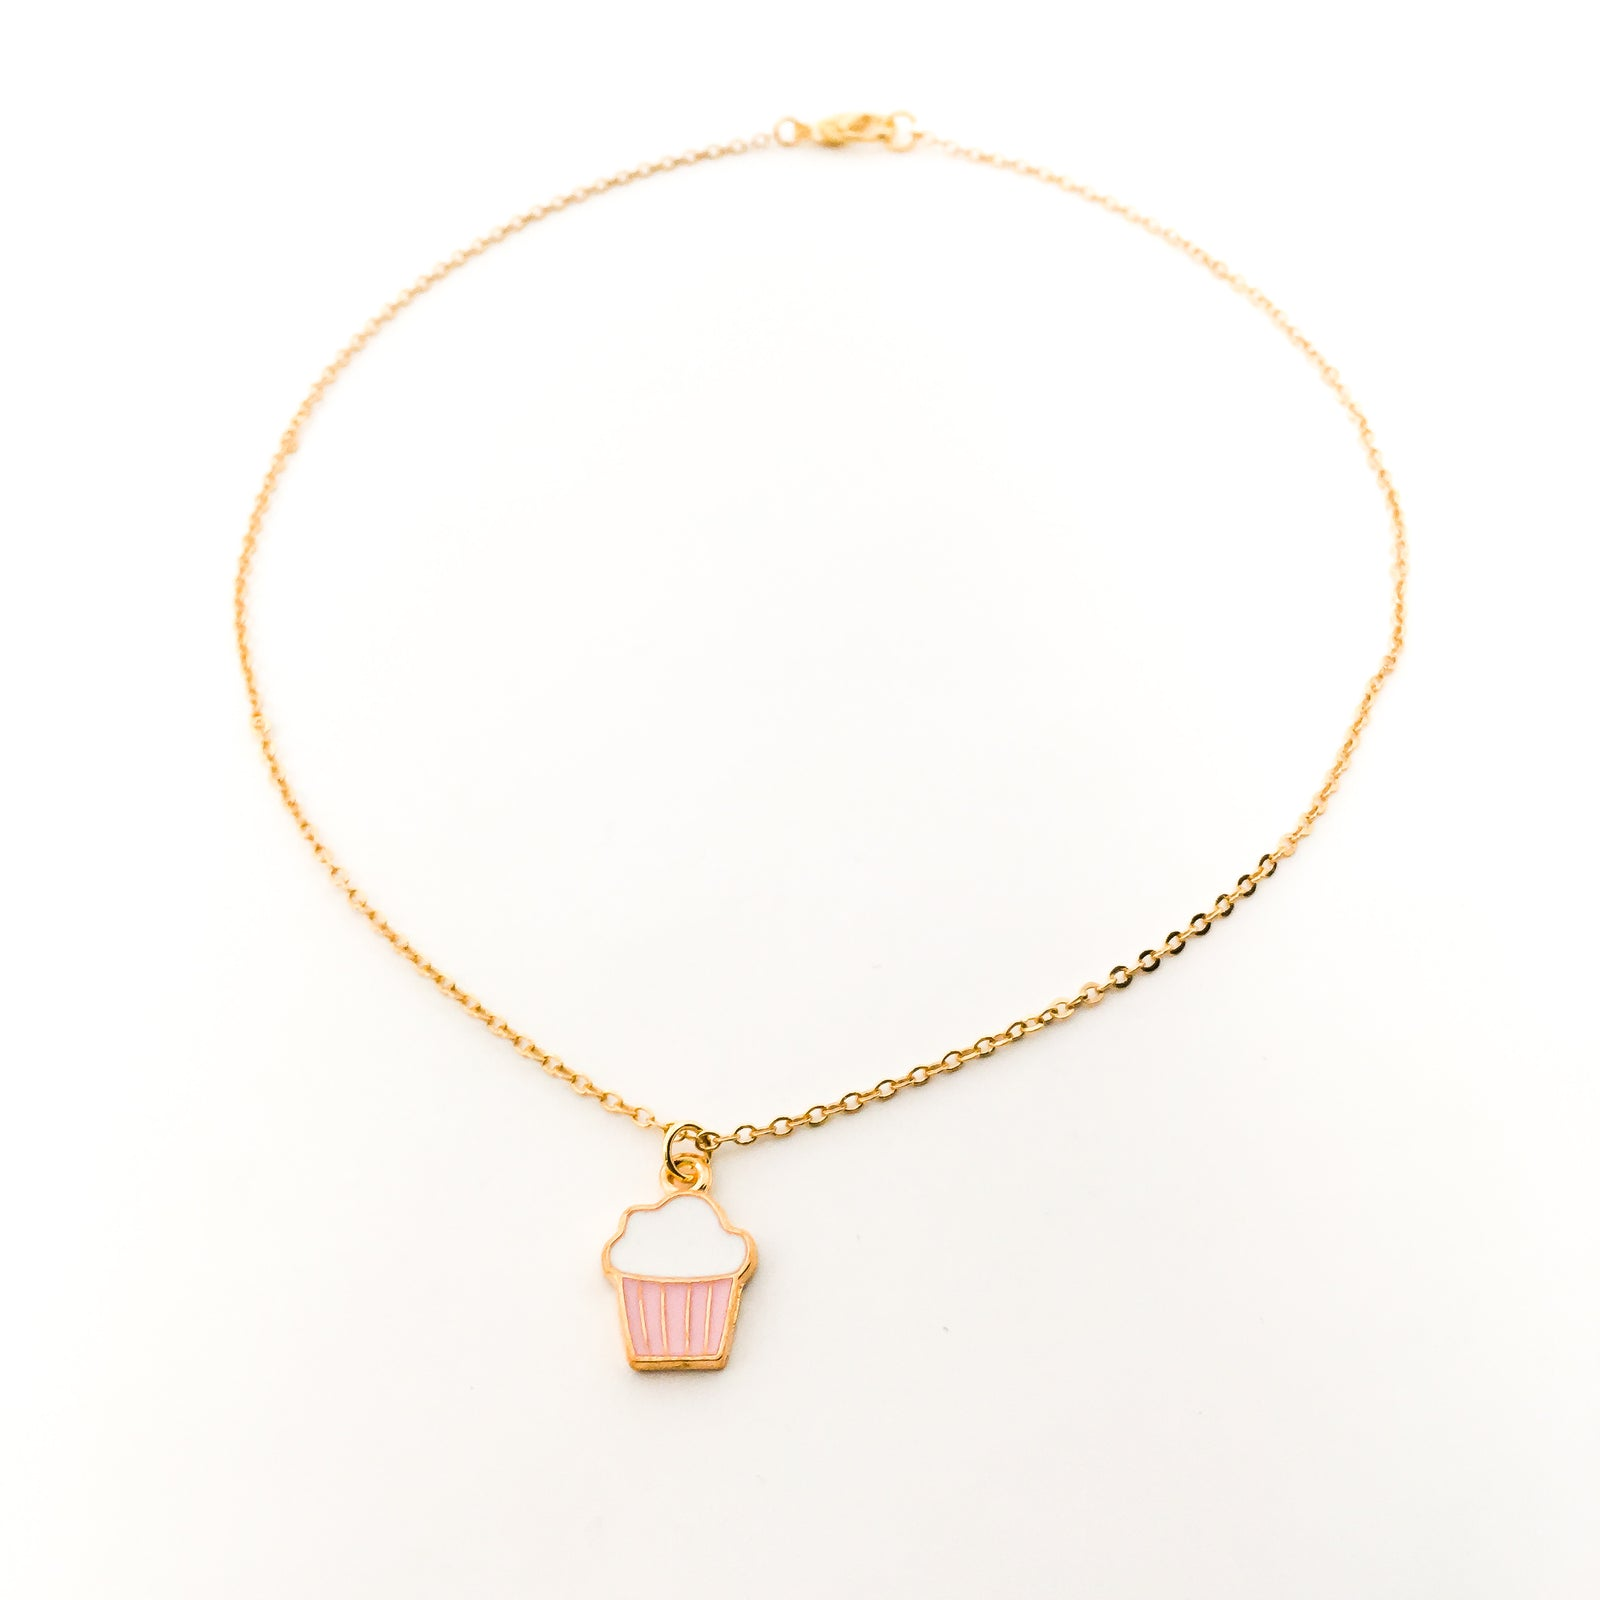 PINK CUPCAKE NECKLACE | GOLD